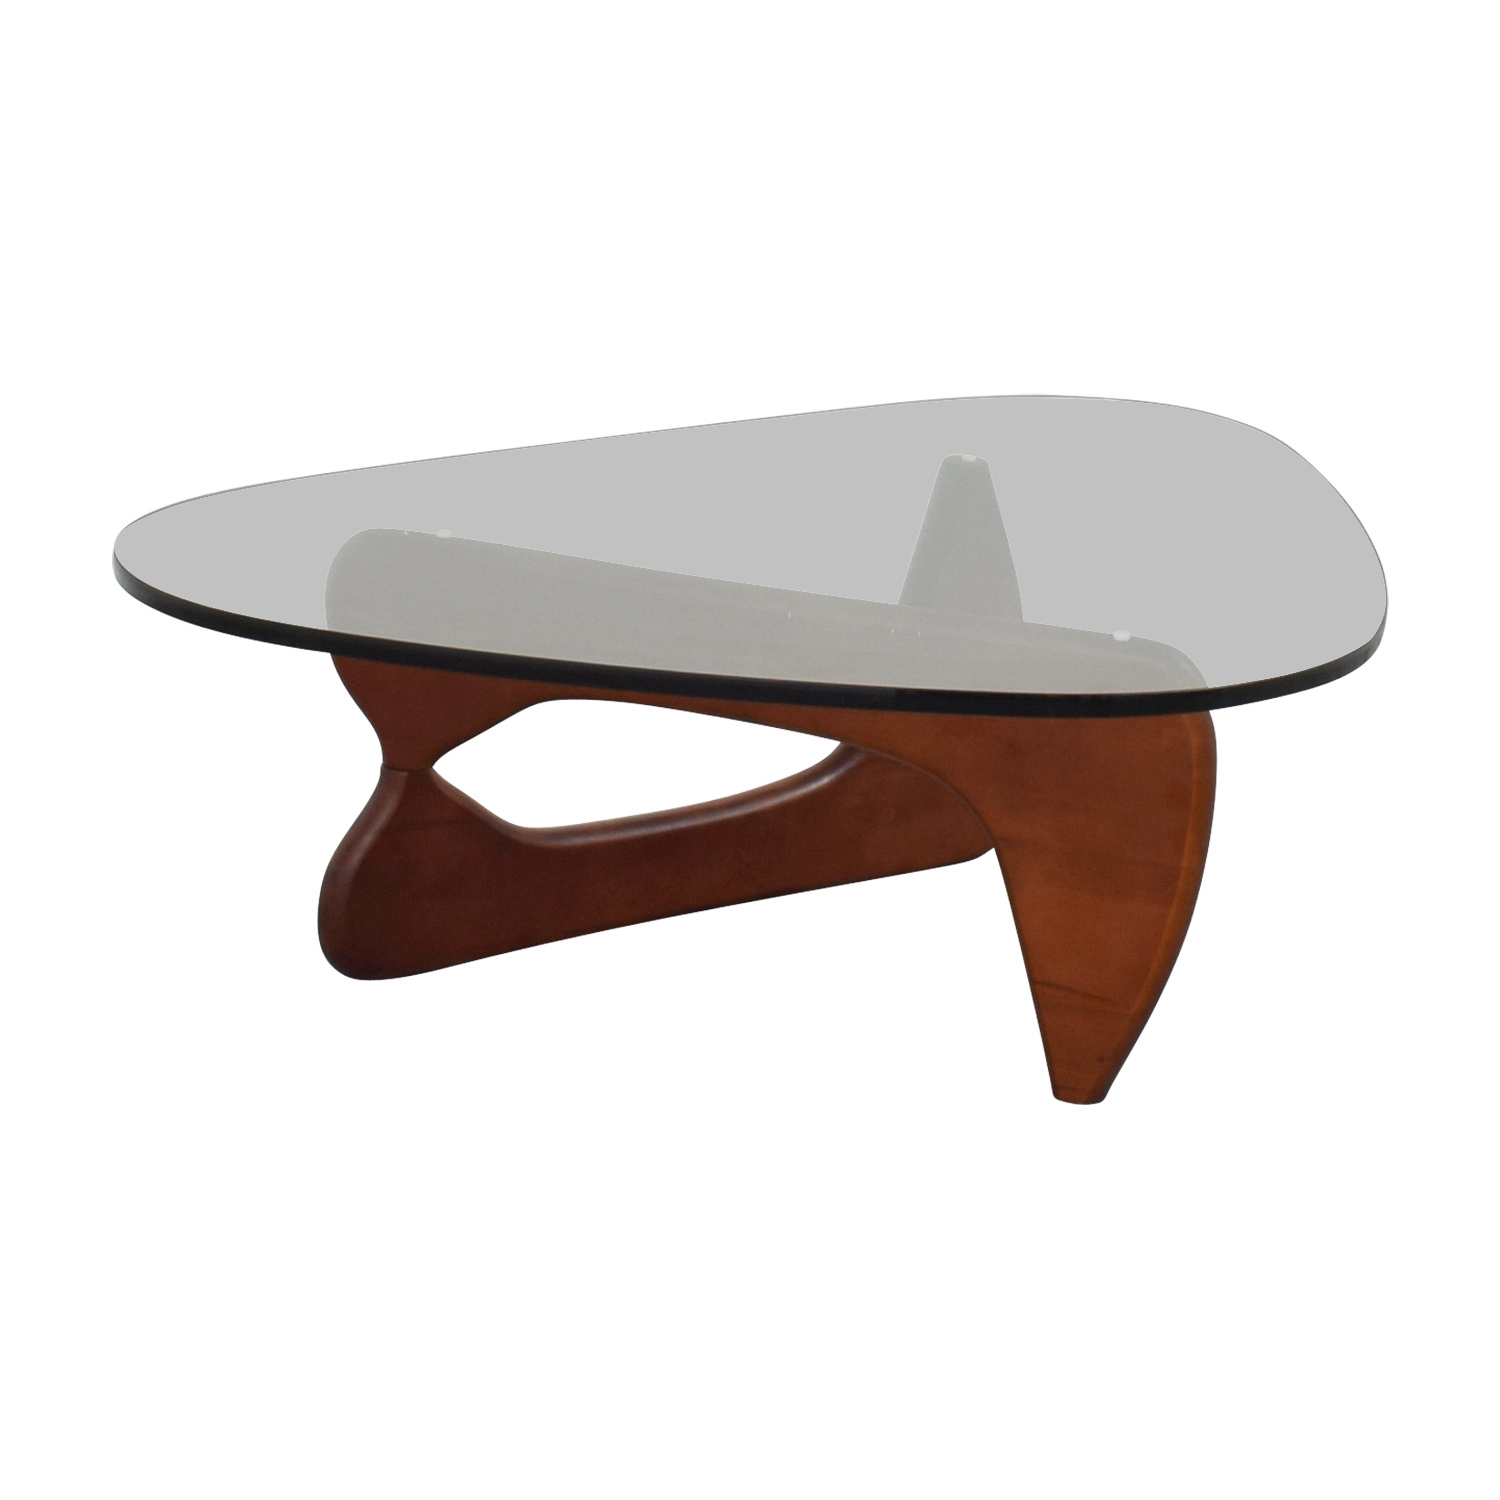 Modway Modway Isamu Noguchi-inspired Triangle Glass Coffee Table with Cherry Wood for sale